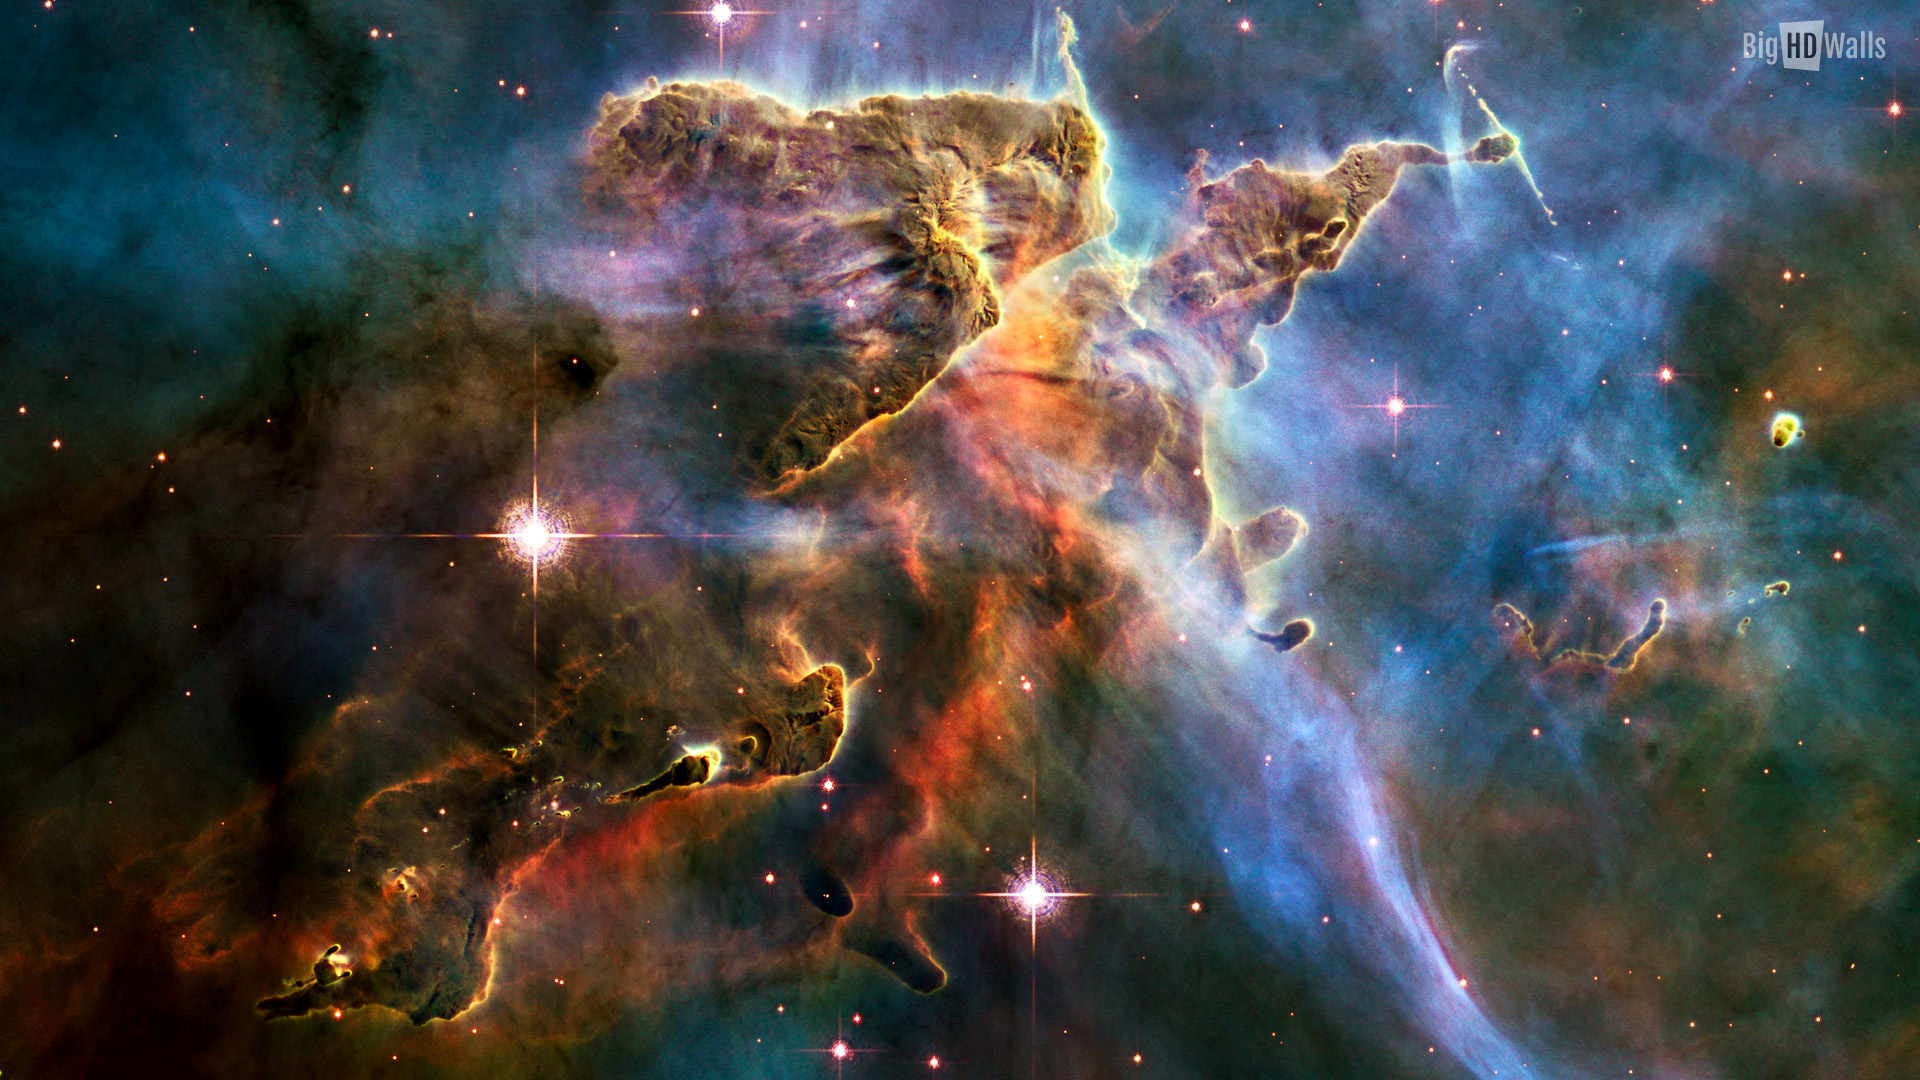 Carina Nebula hd wallpaper009 1920x1080